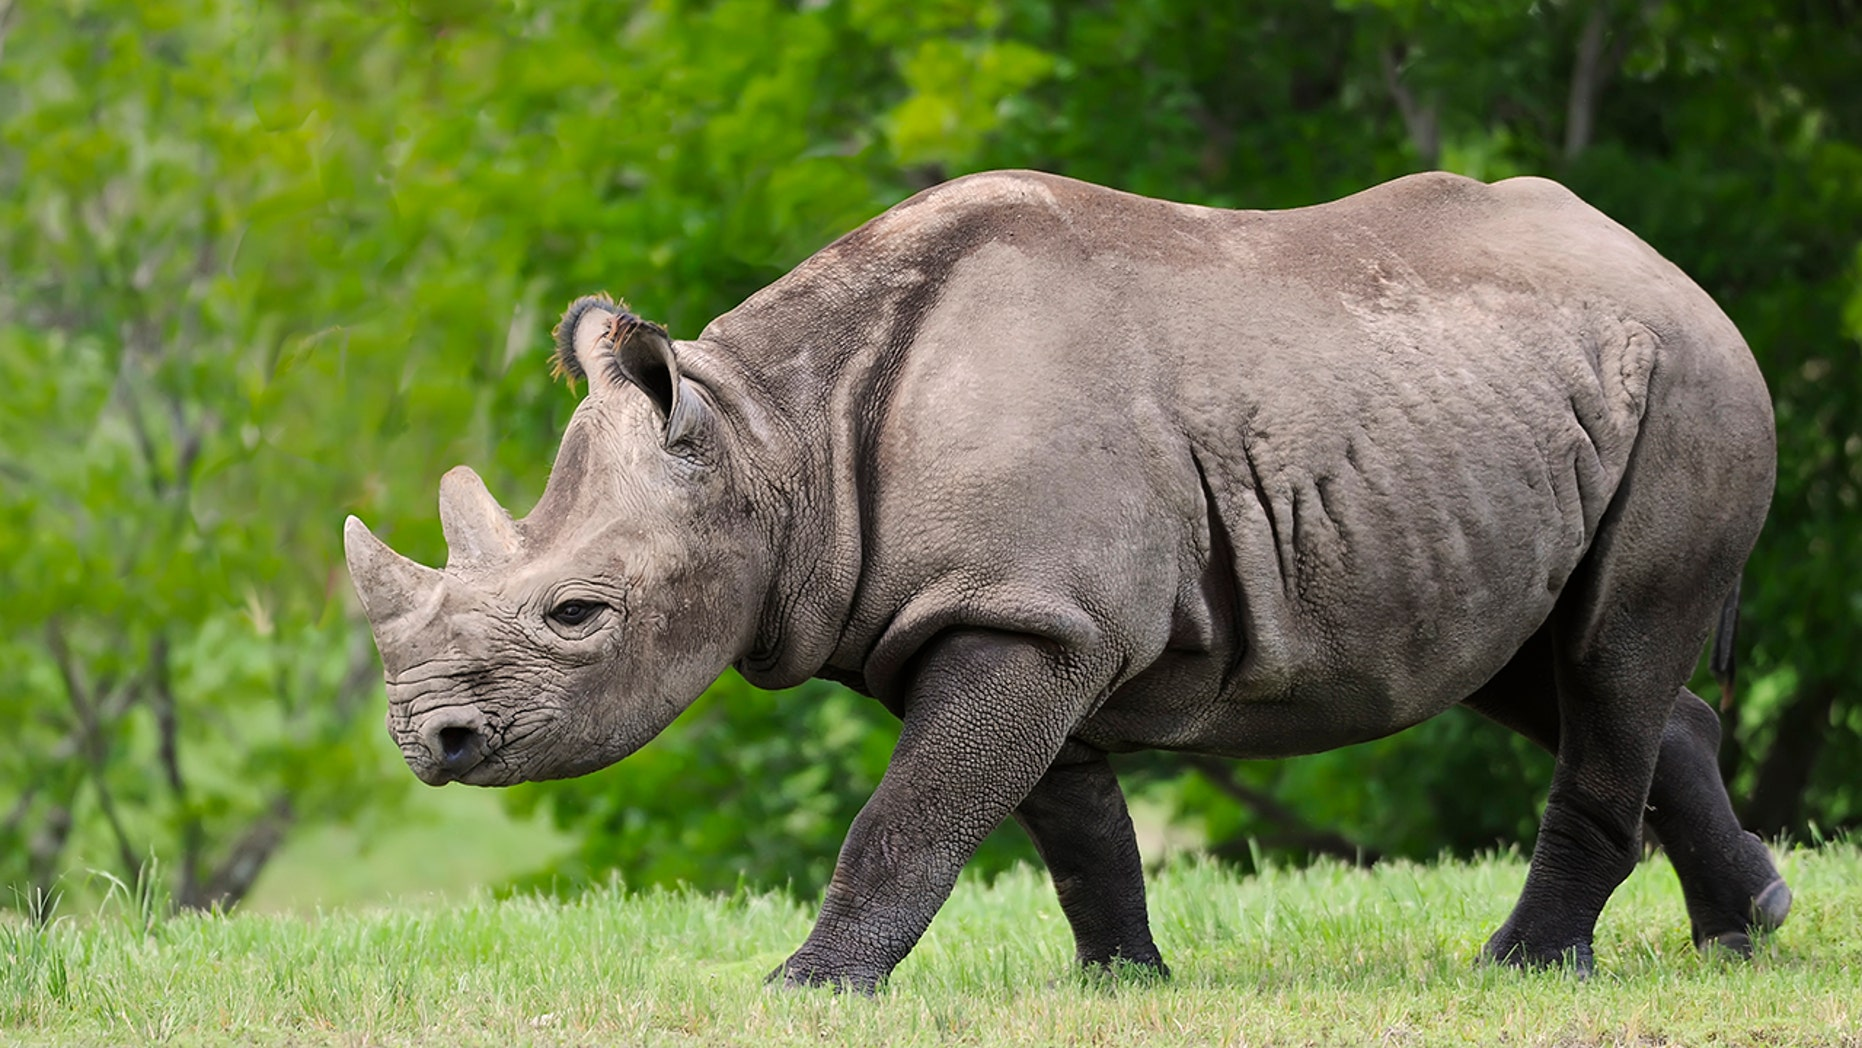 Seven endanger black rhinos died last month in Kenya after being moved between national parks.